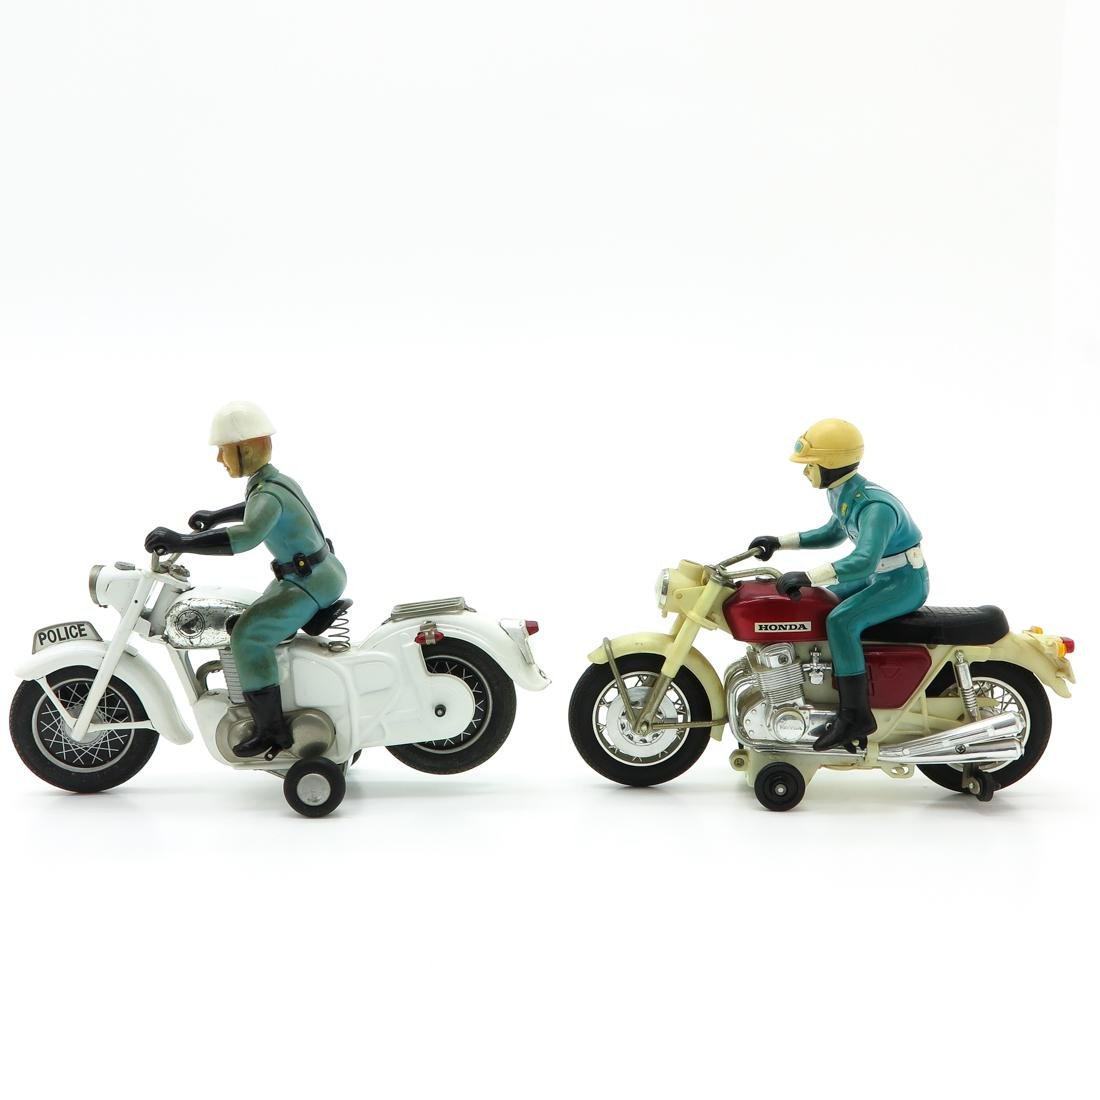 Lot of 2 Vintage Toy Motorcycles